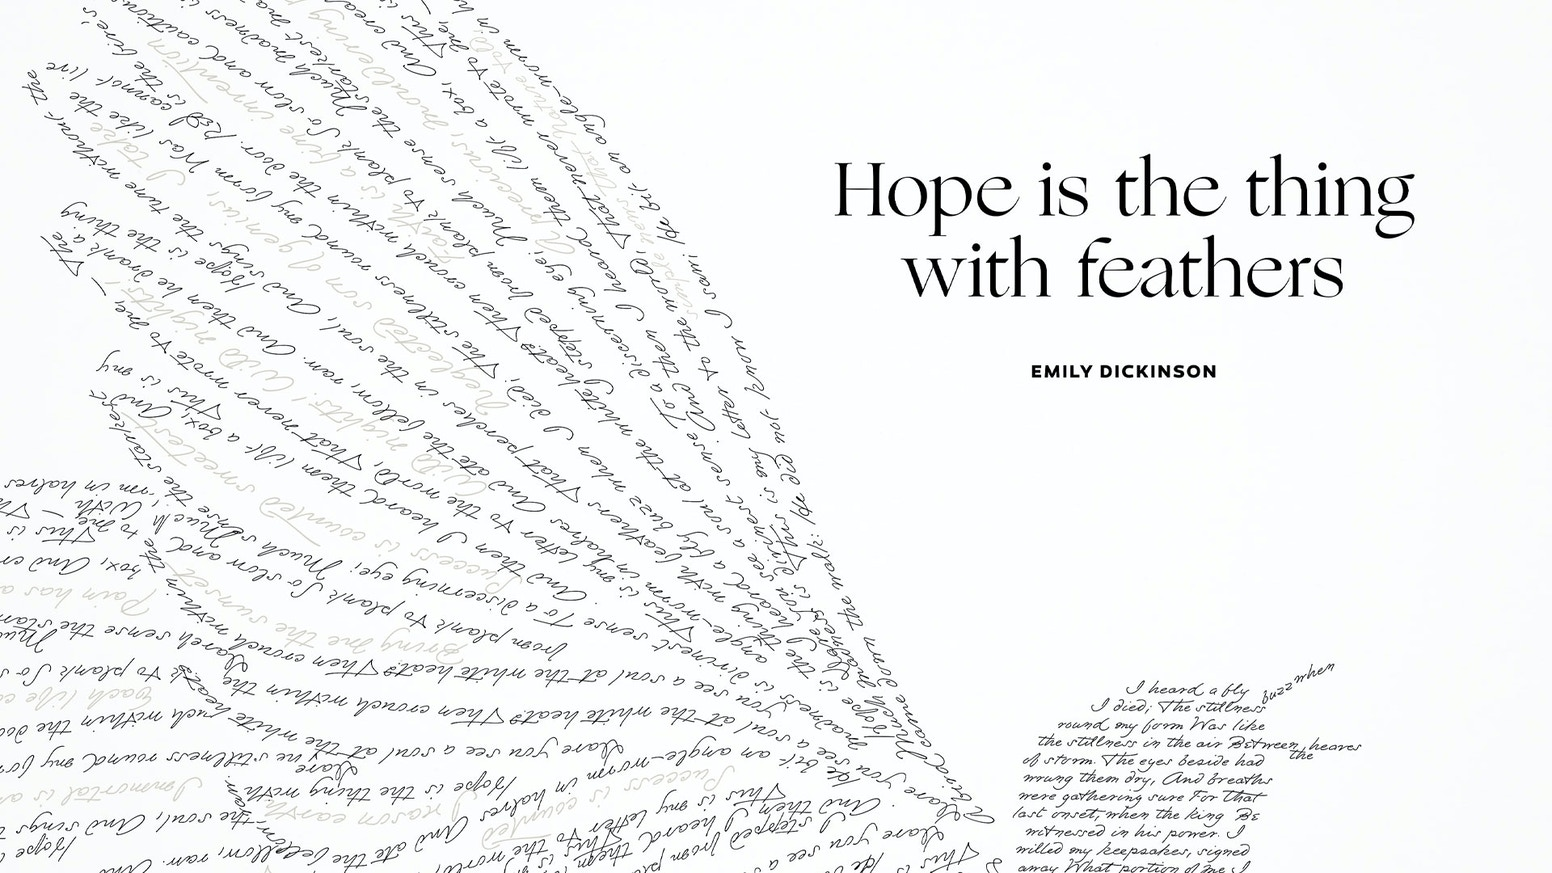 Hope Is The Thing Emily Dickinson Letterpress Print By Obvious State Kickstarter Watch ian mcmillan's tips on writing poems for special occasions. hope is the thing emily dickinson